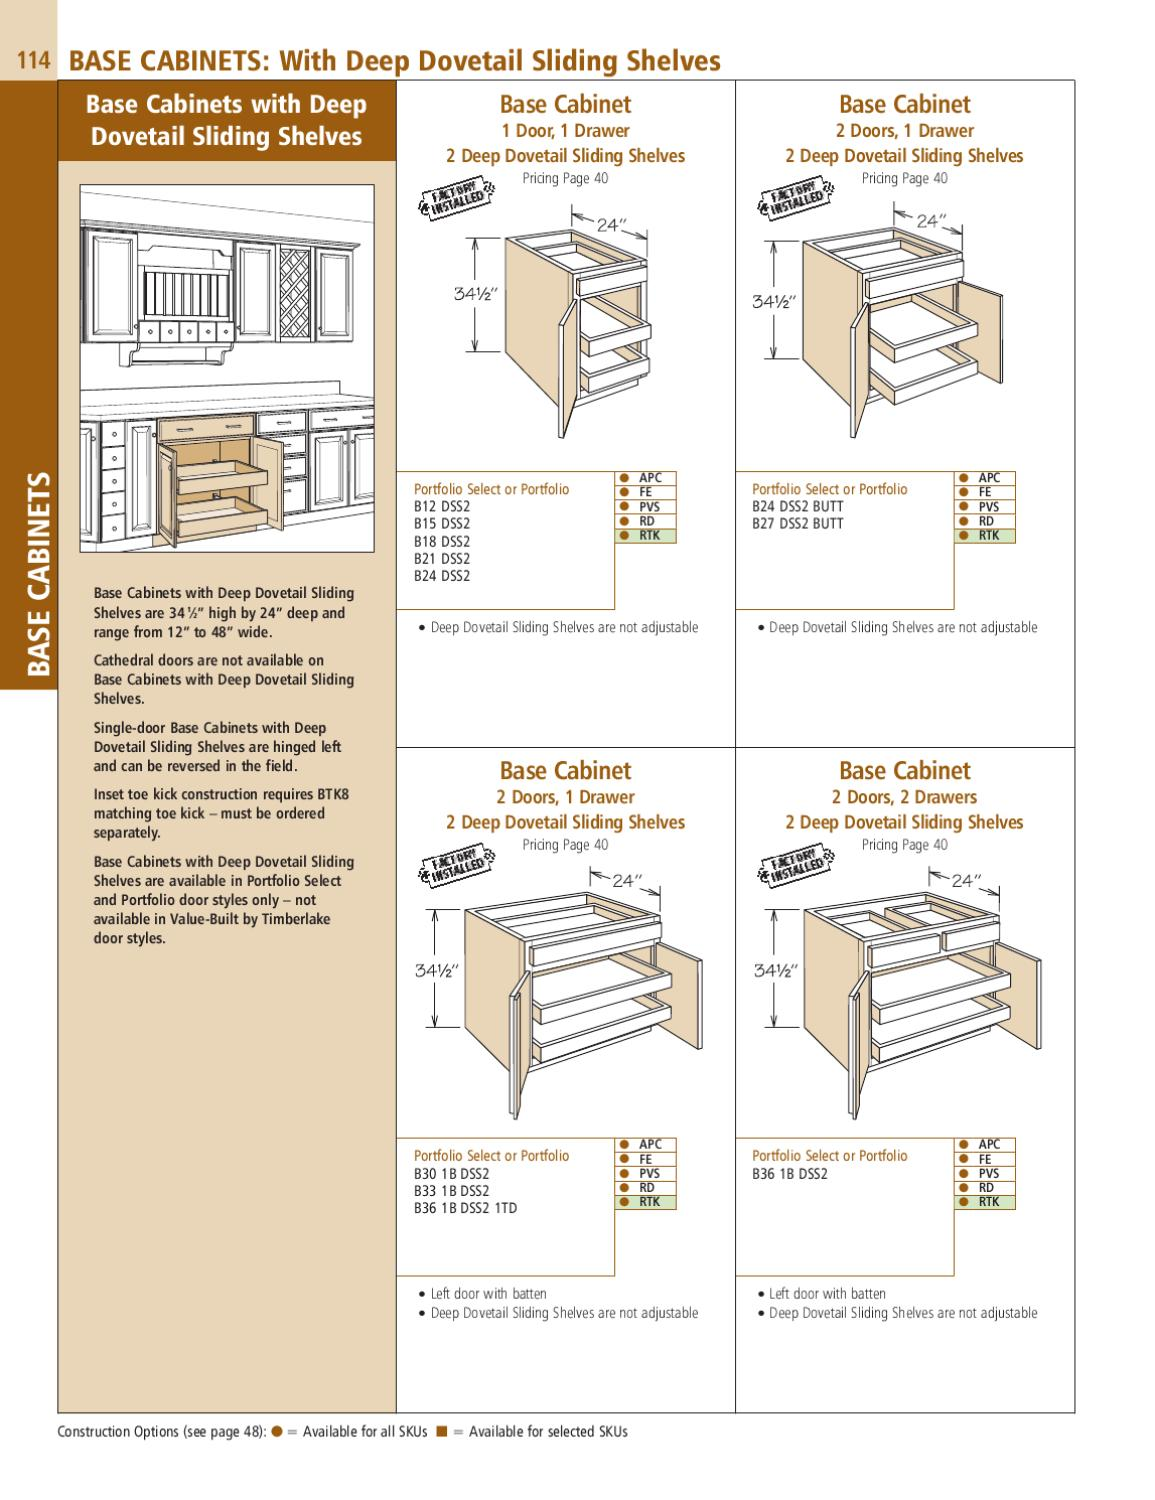 12 Deep Base Cabinets 2012 Specification Guide By Timberlake Cabinetry By Timberlake